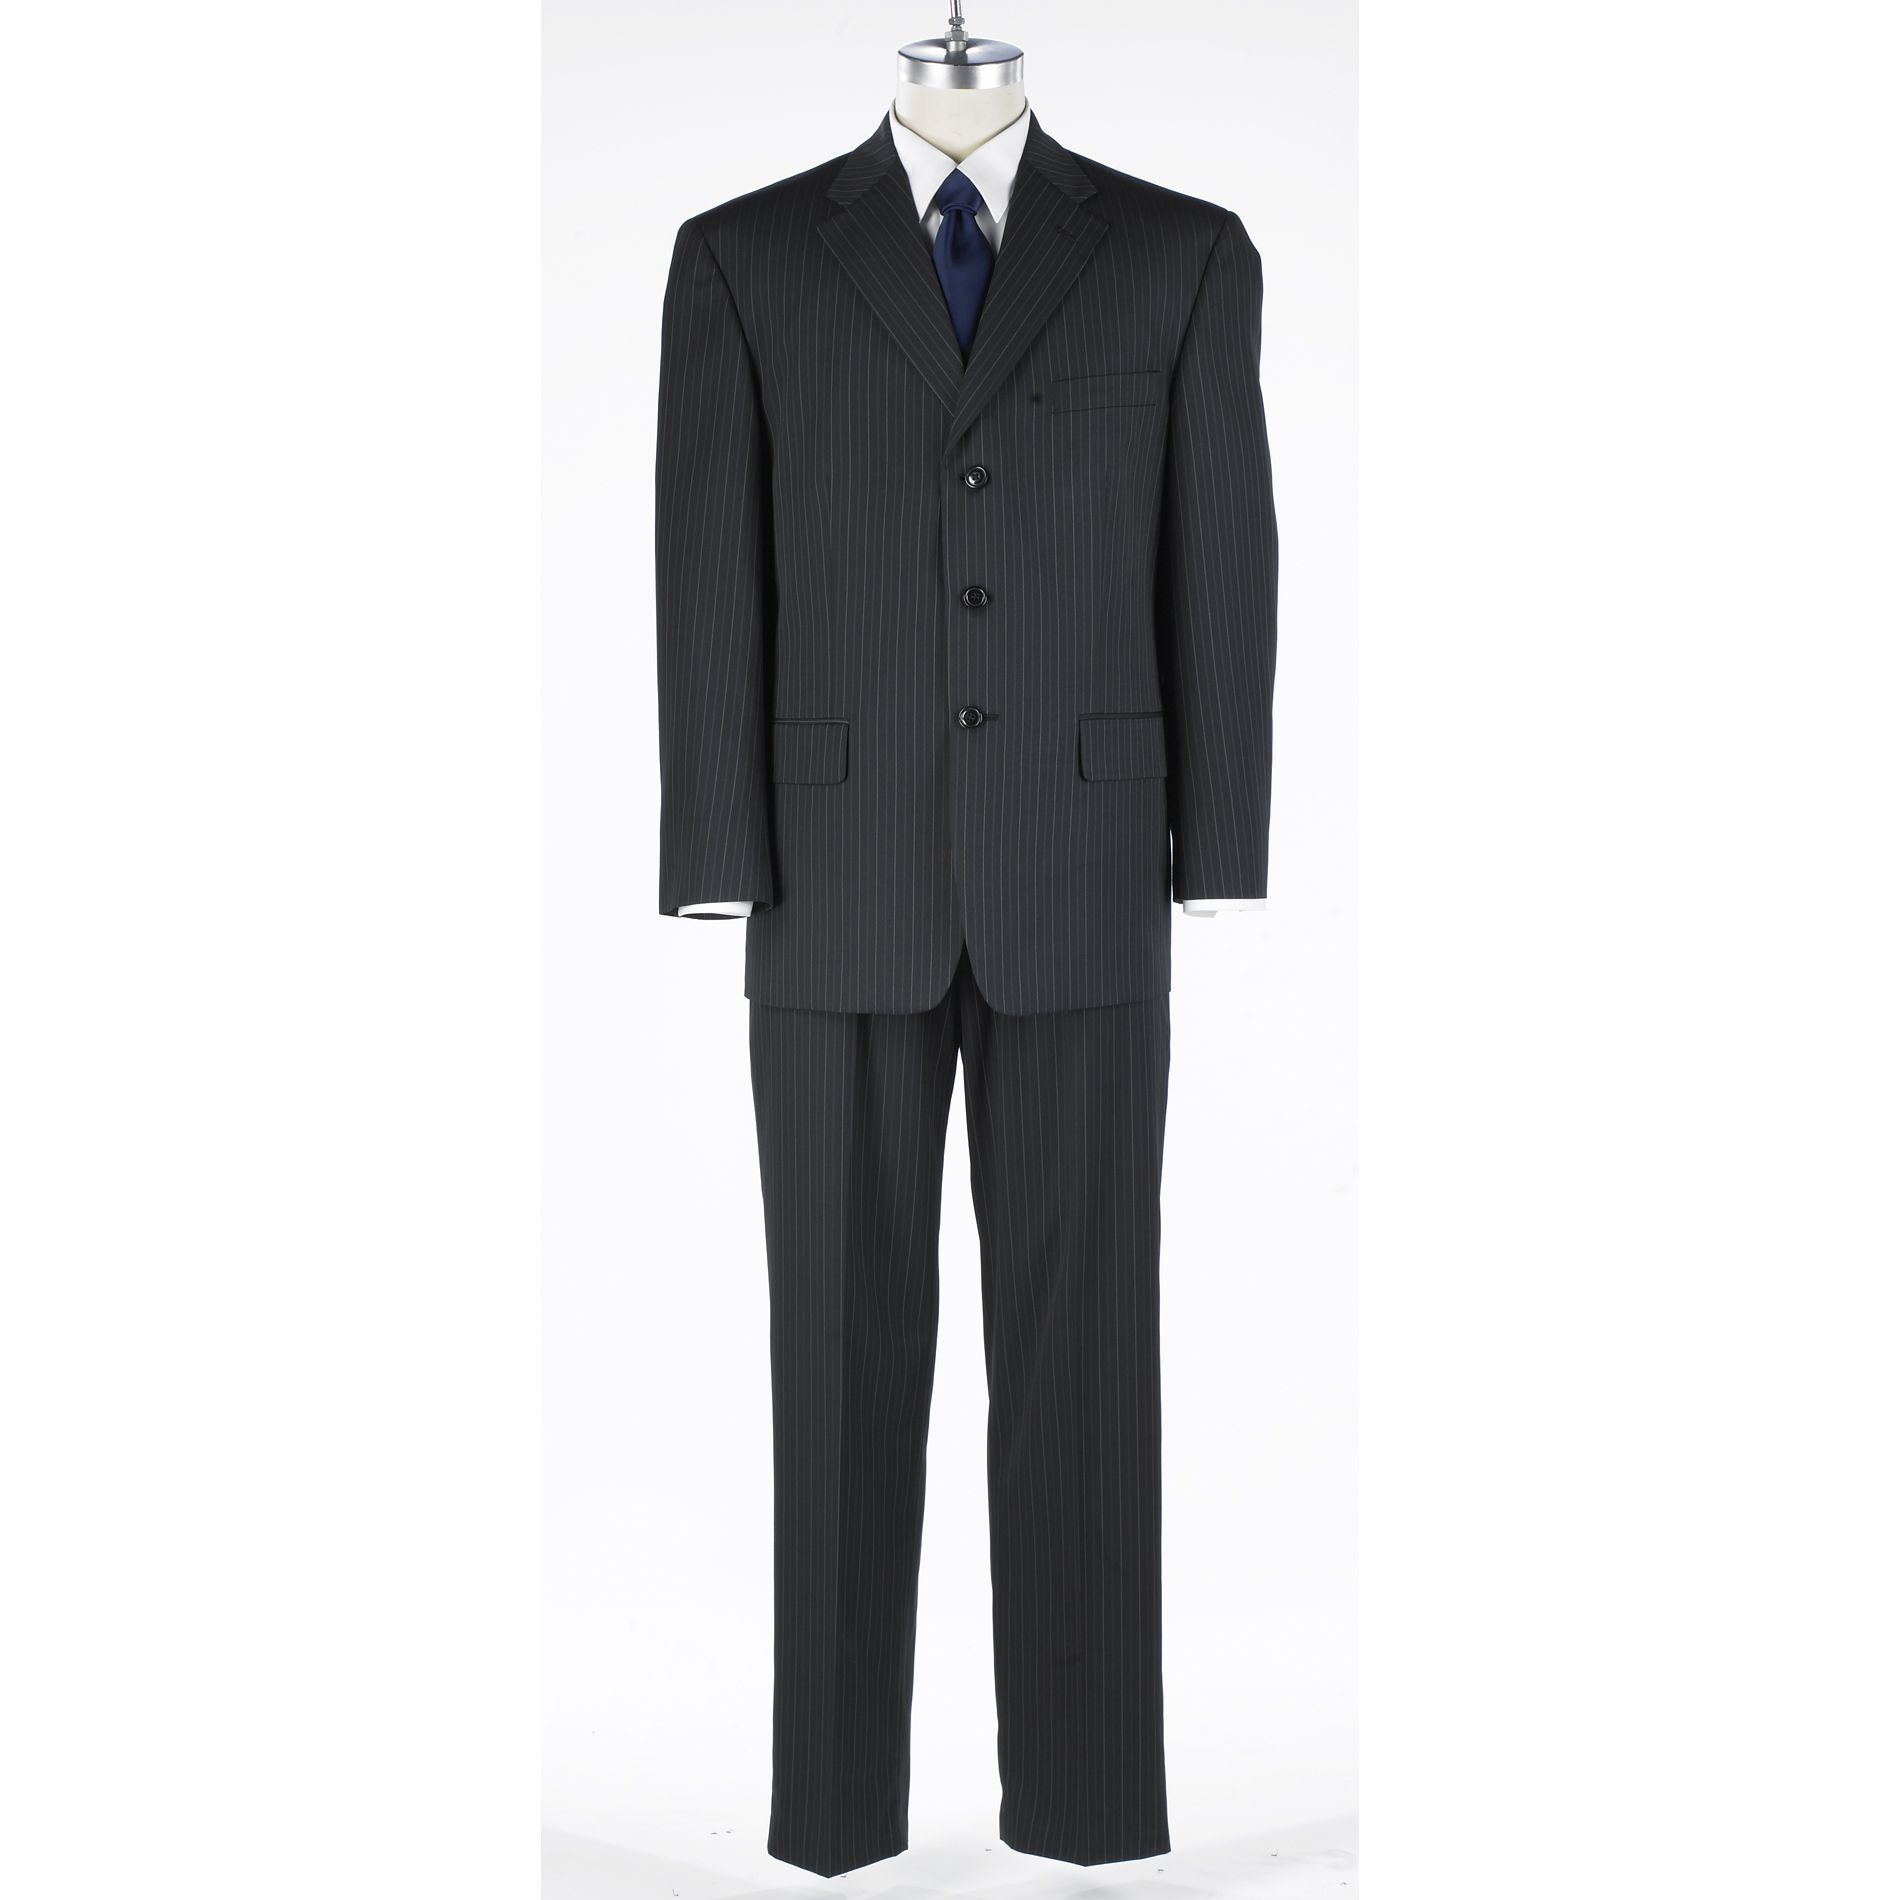 Haggar Suit Up System™ Tonal Coin Edge Stripe Suit Collection at Sears.com